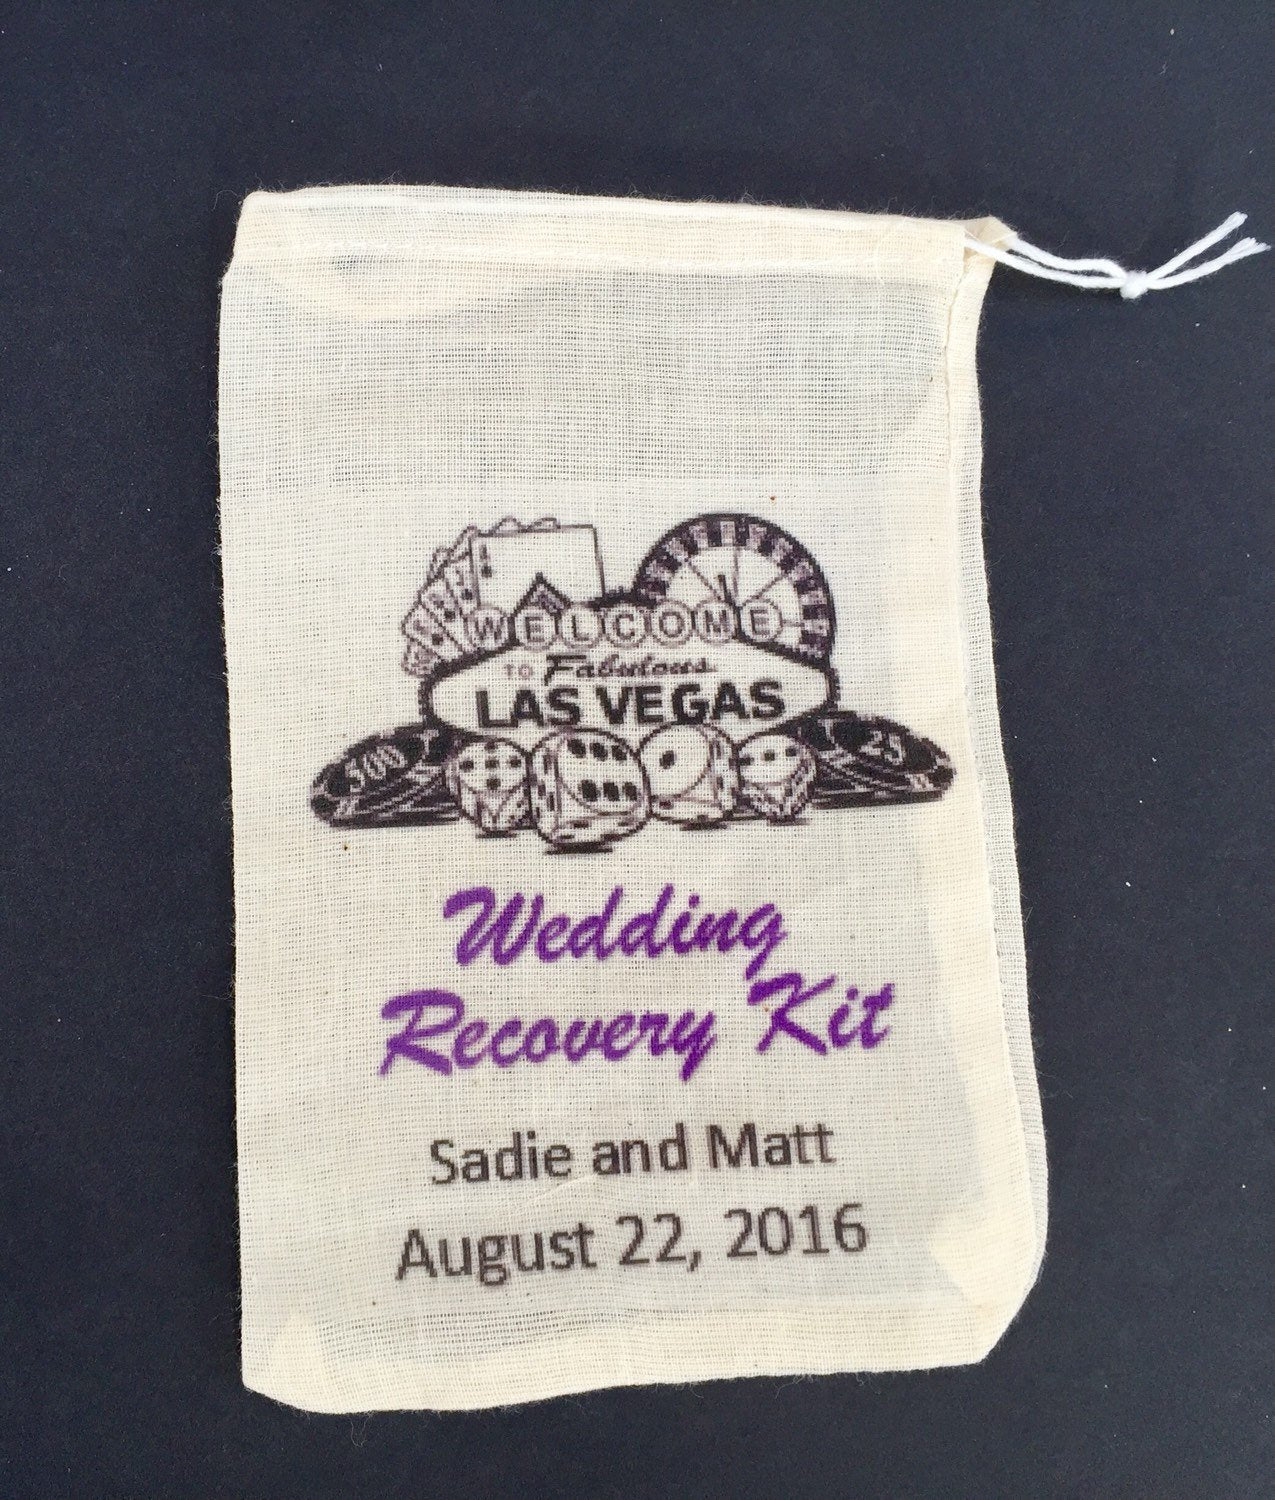 10 Las Vegas wedding 6x8 recovery kit bags, wedding day survival kit,  recovery kit, hangover kit, survival kit, recovery kit, wedding emerg